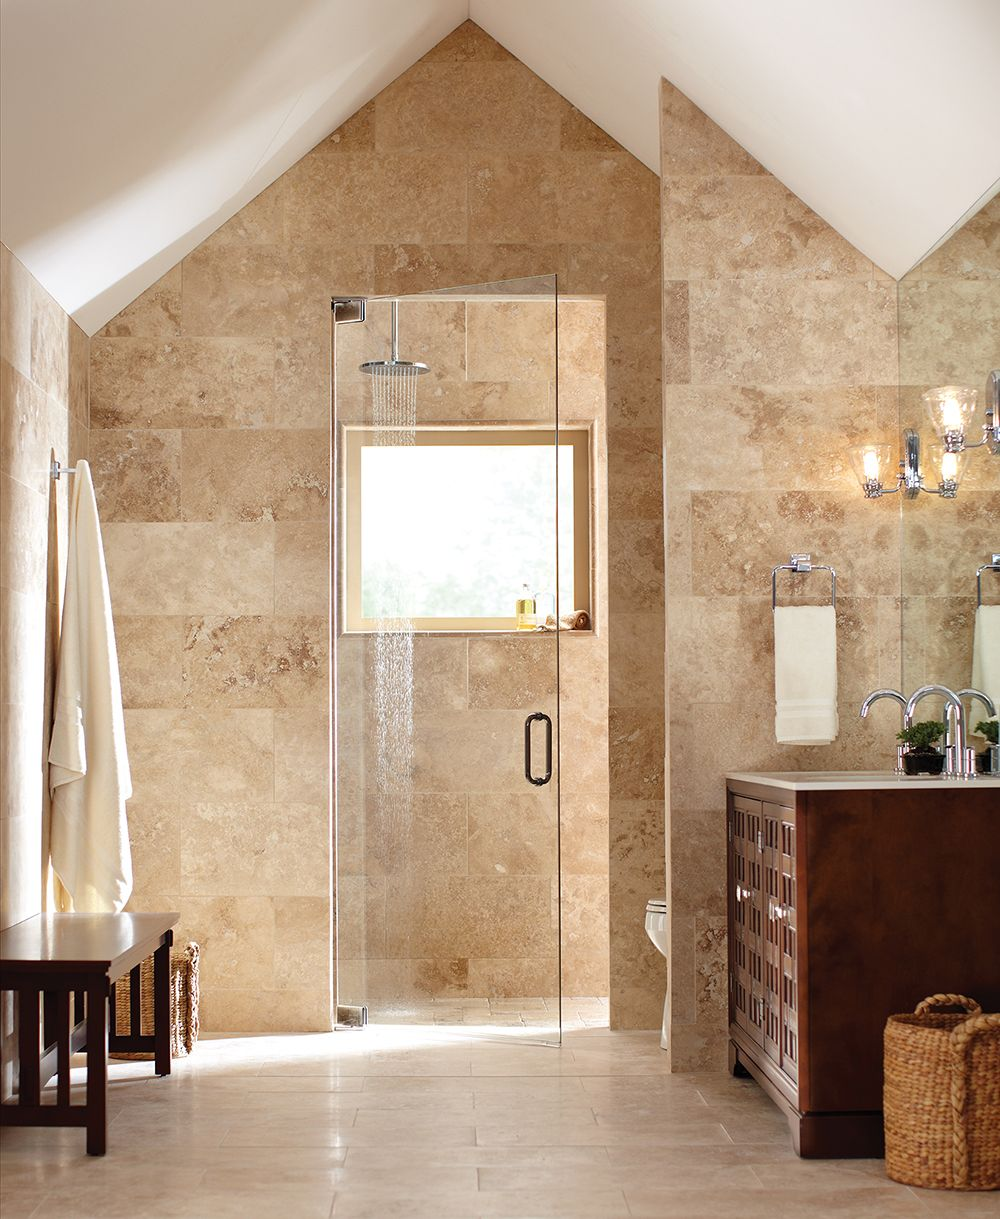 Bathroom reno coming up inspiration abounds click for Shower reno